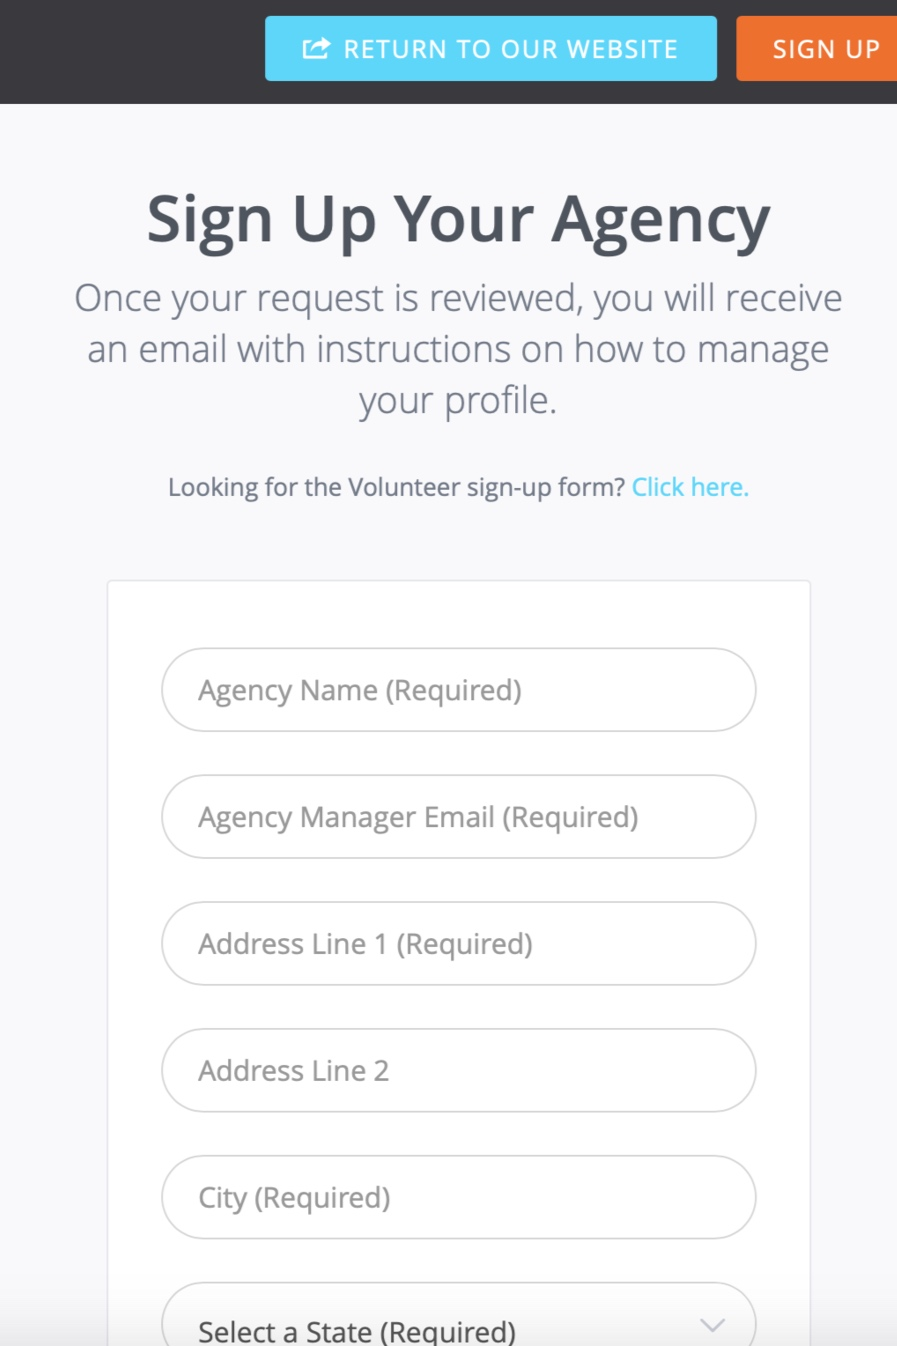 *Agency Manager is the primary contact for Love Out Loud. You can add other agency managers and change the primary contact later.